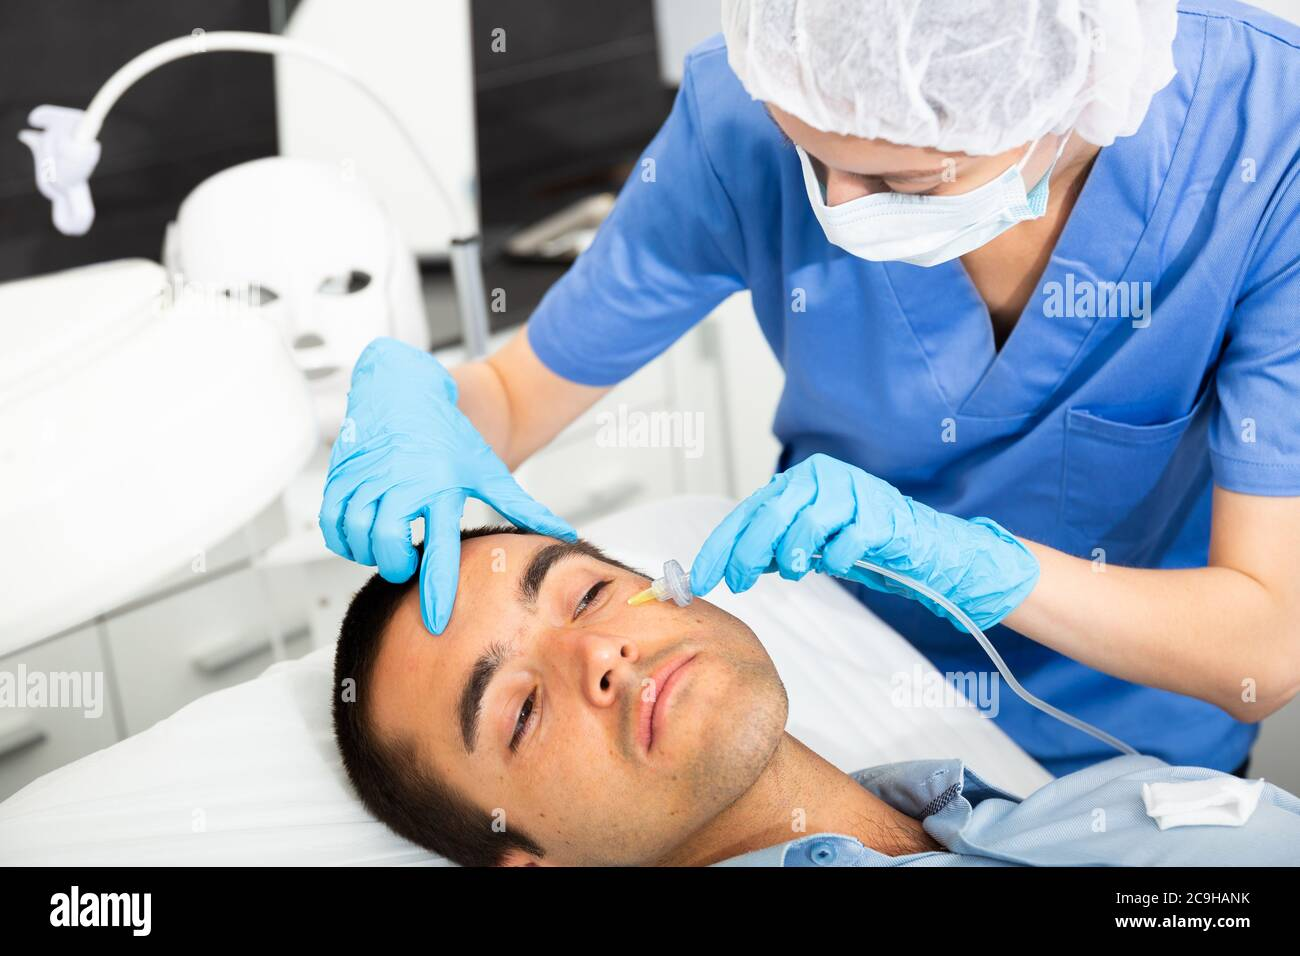 Portrait Of Young Client Of Aesthetic Medicine Clinic During Carboxy Therapy Doctor Injecting Carbon Dioxide Under Face Skin To Increase Blood Flow I Stock Photo Alamy